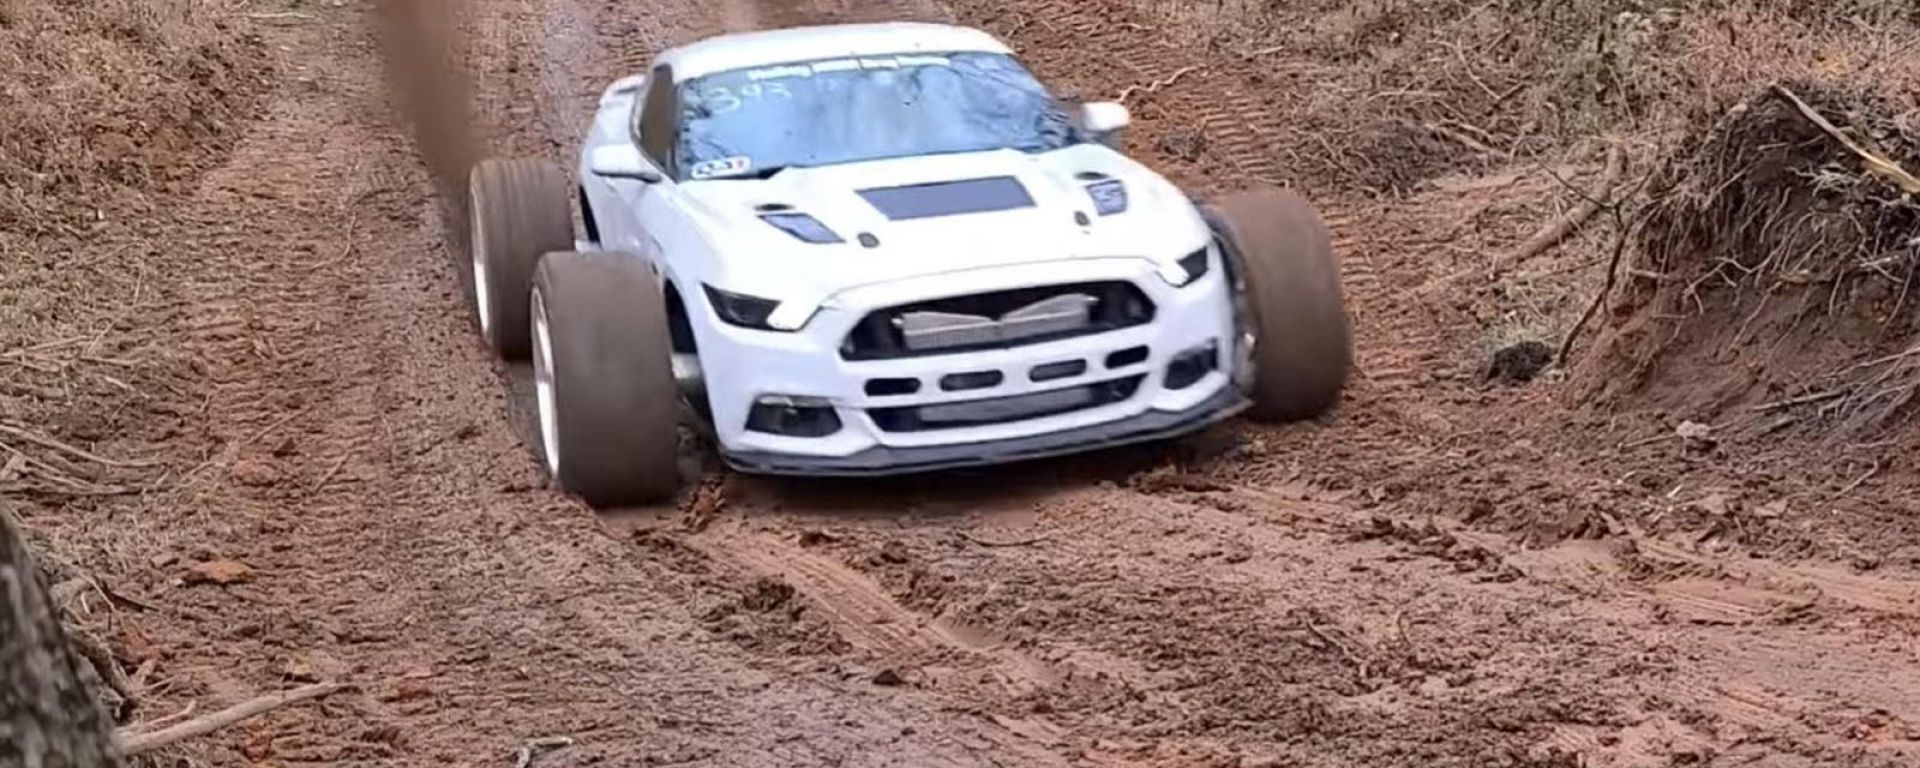 [VIDEO] La Ford Mustang biturbo da 1000 CV si arrampica nel fango